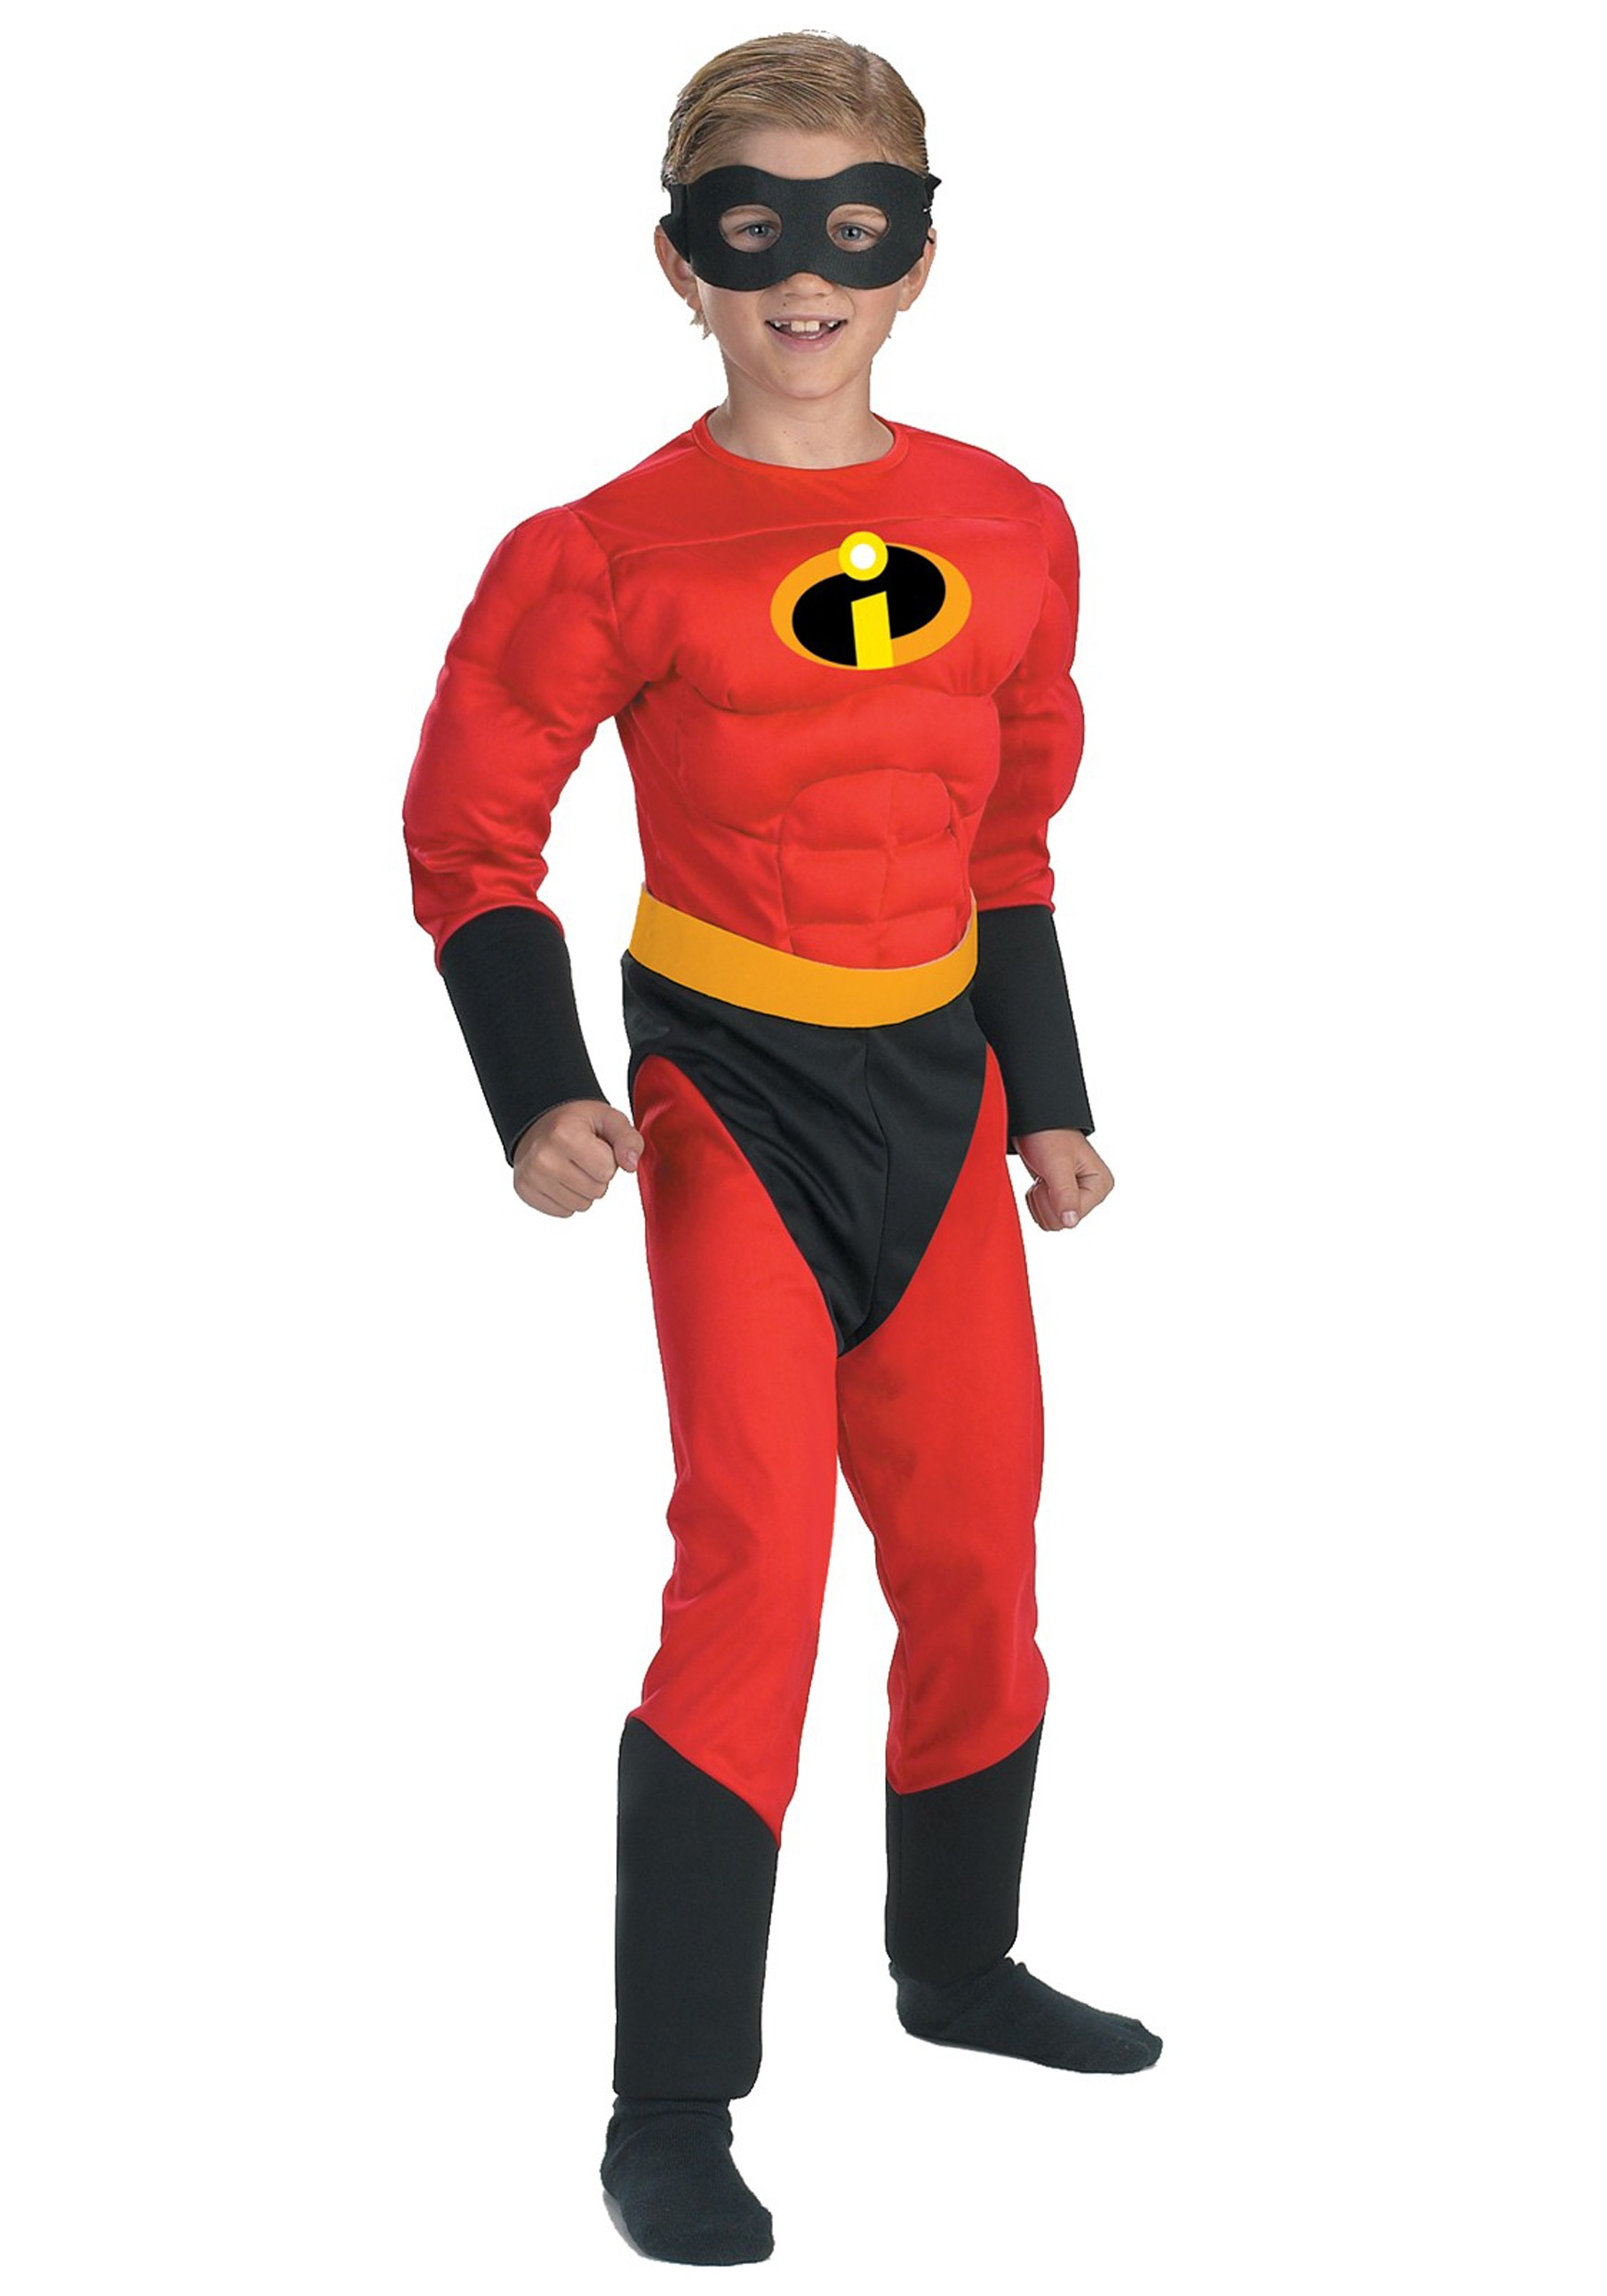 sc 1 st  Halloween Costumes : childrens flash costume  - Germanpascual.Com